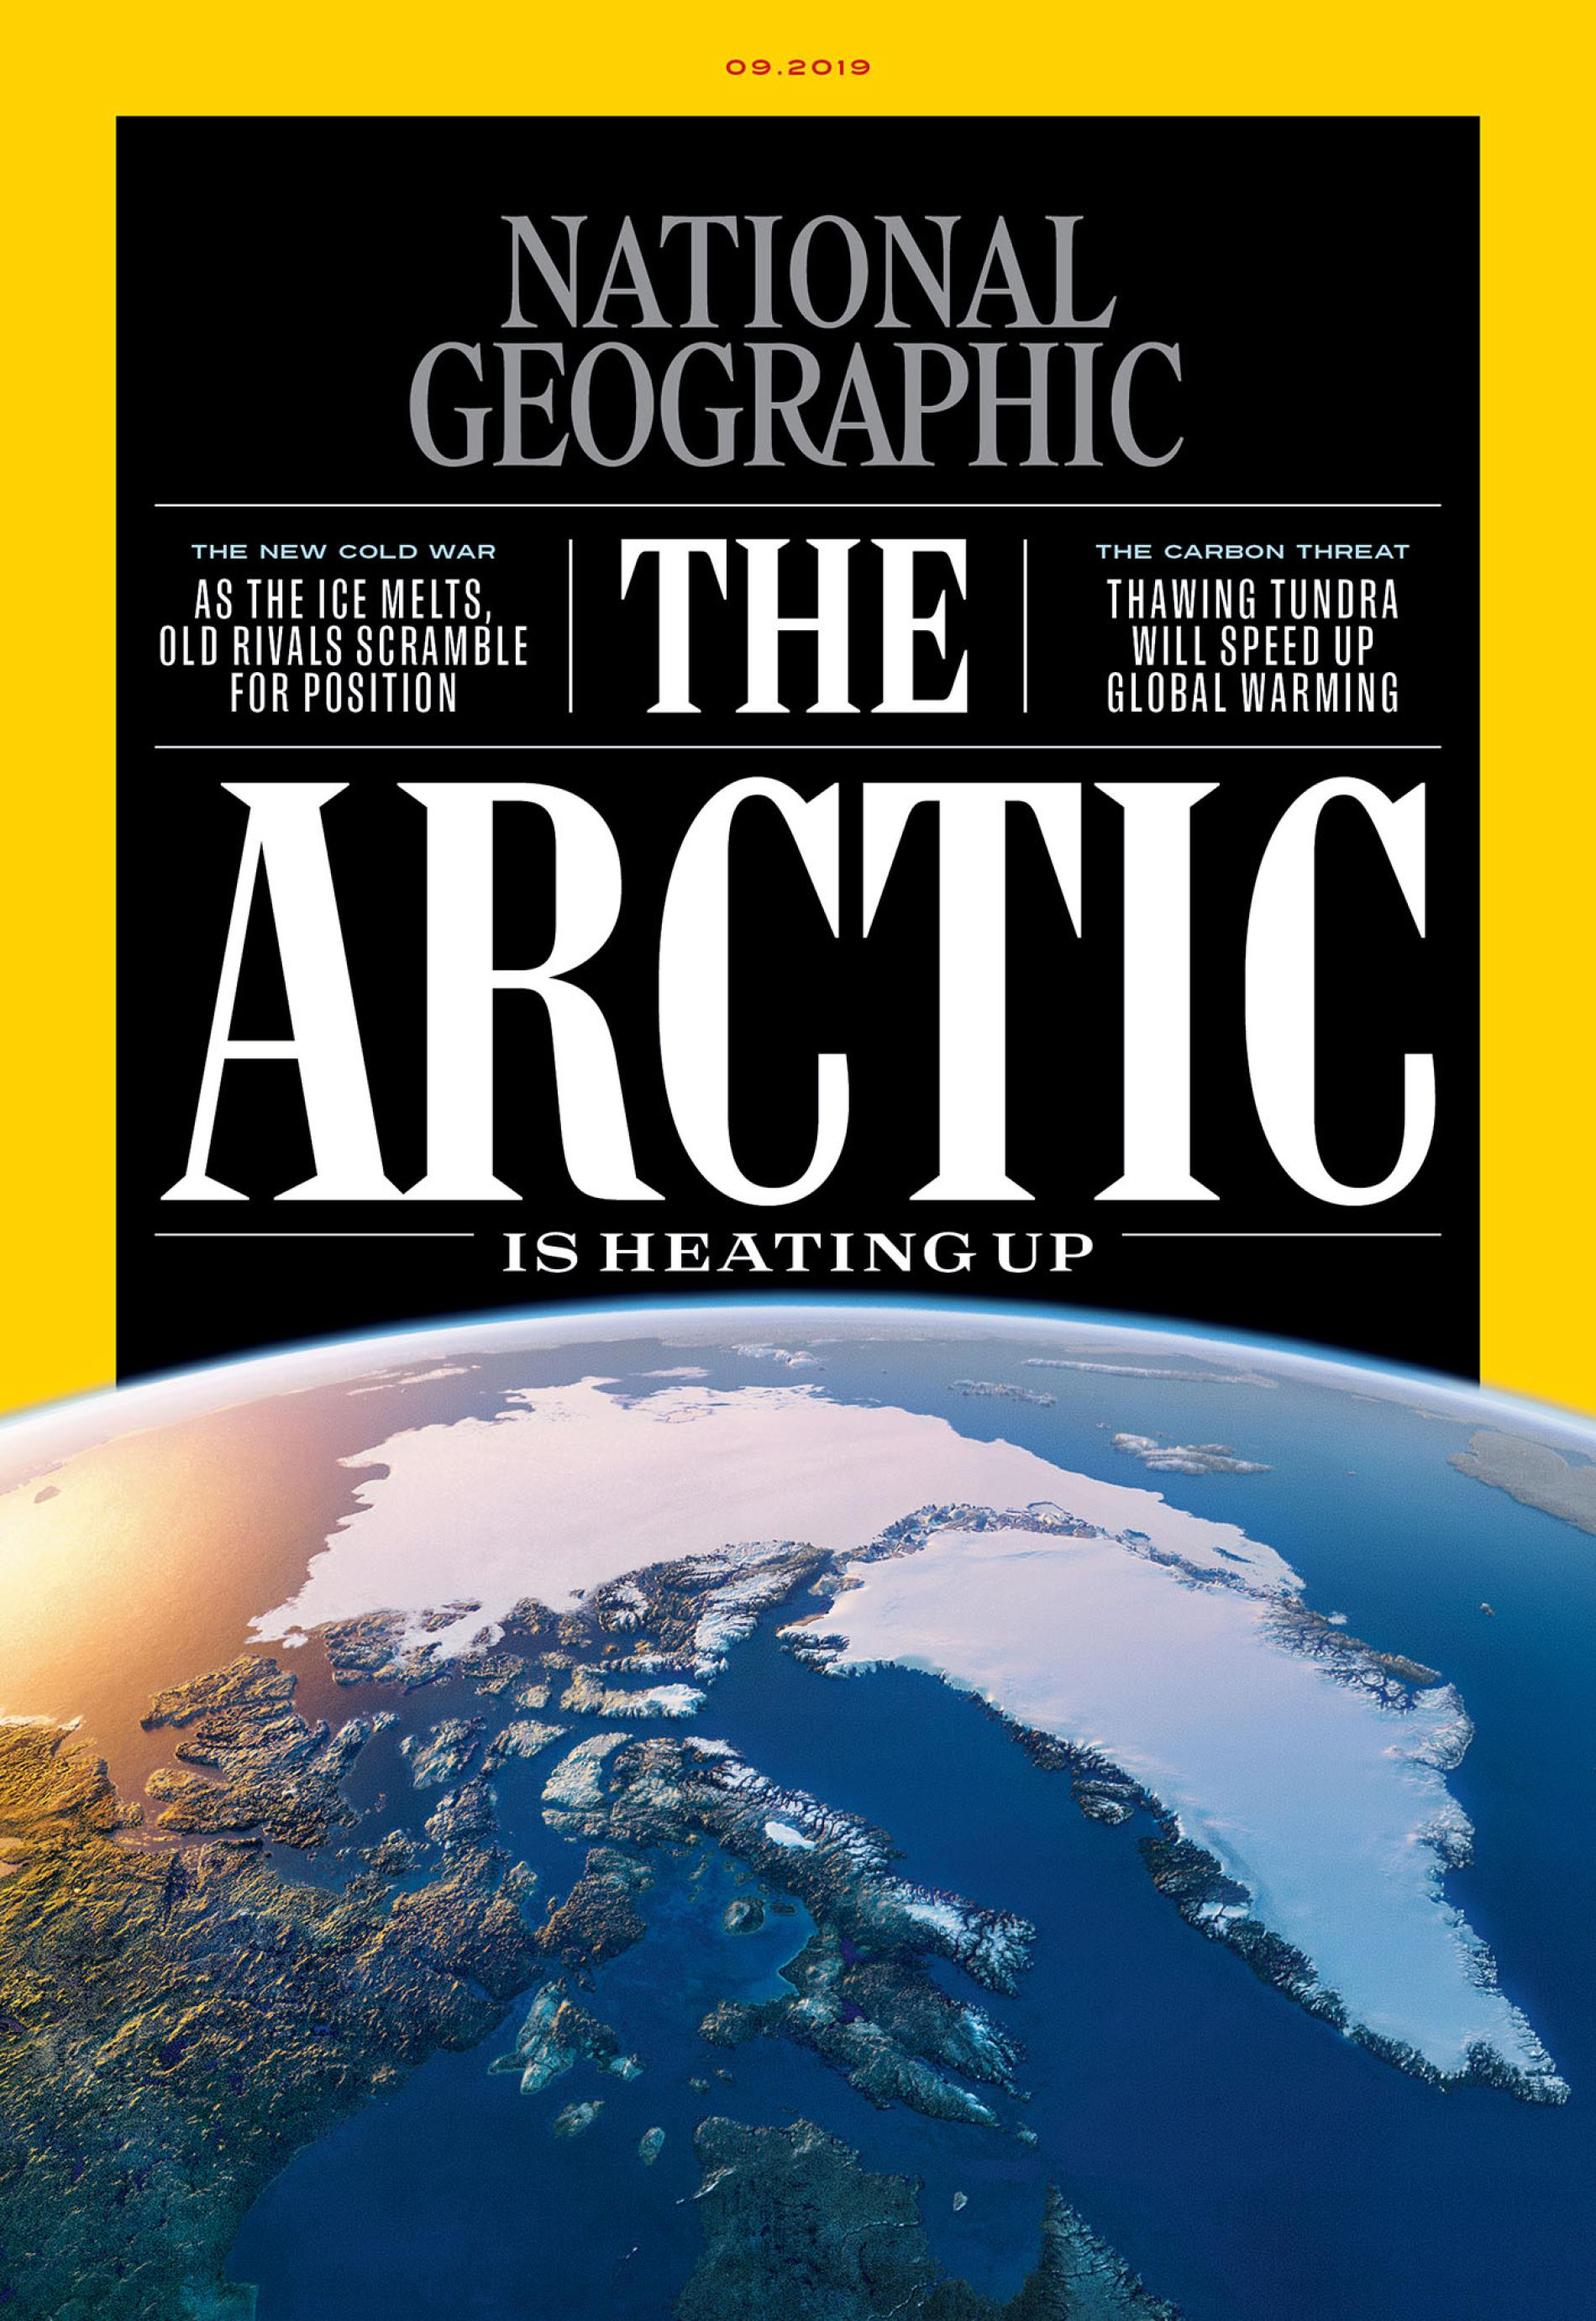 the Arctic is heating up